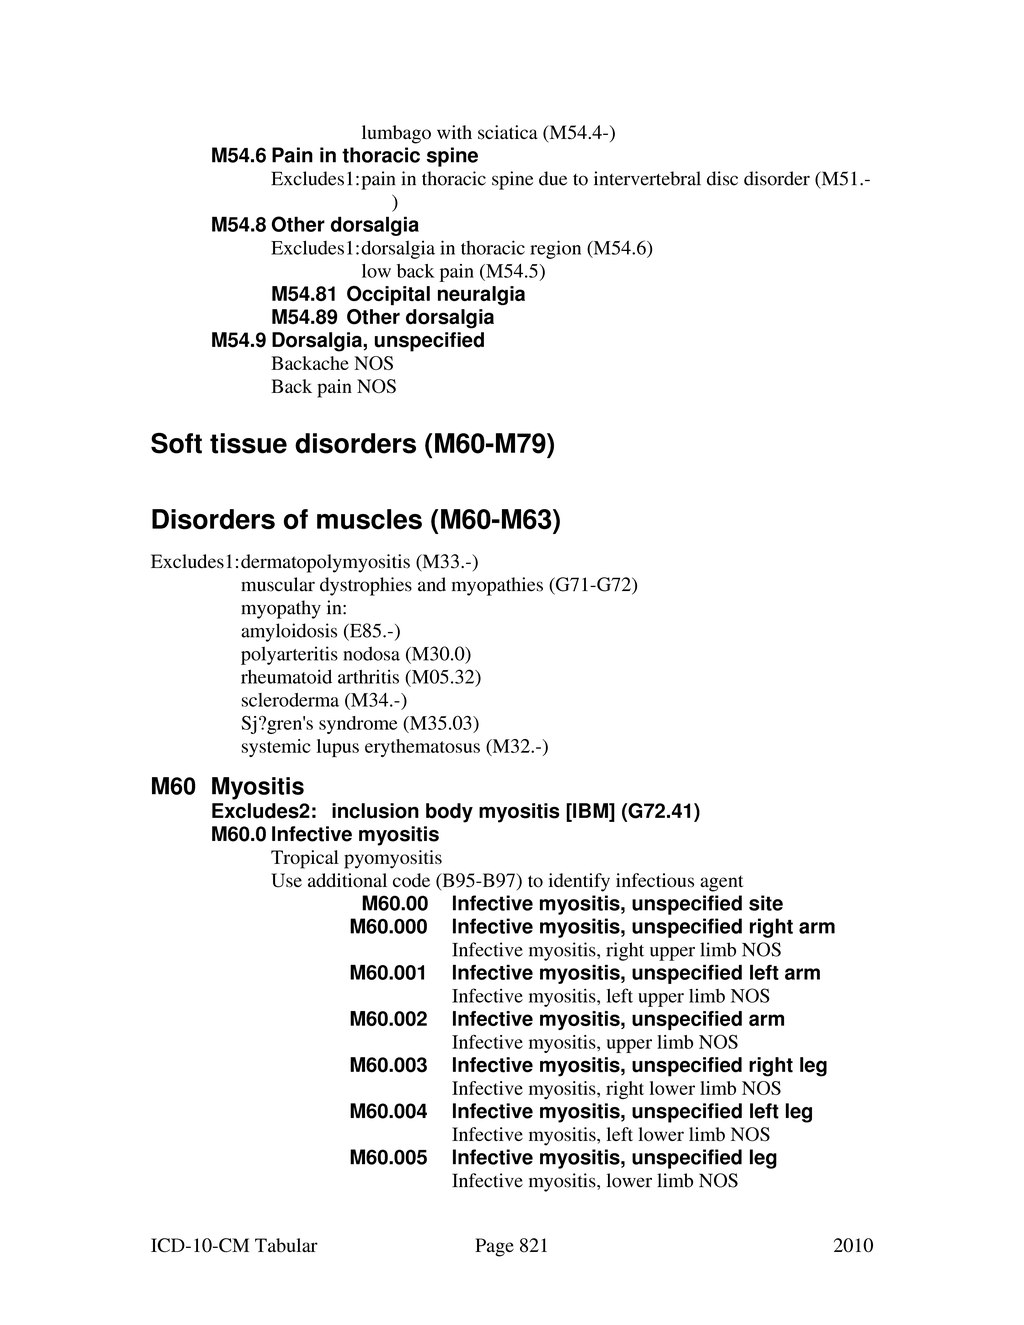 Page:ICD-10-CM (2010) djvu/821 - Wikisource, the free online